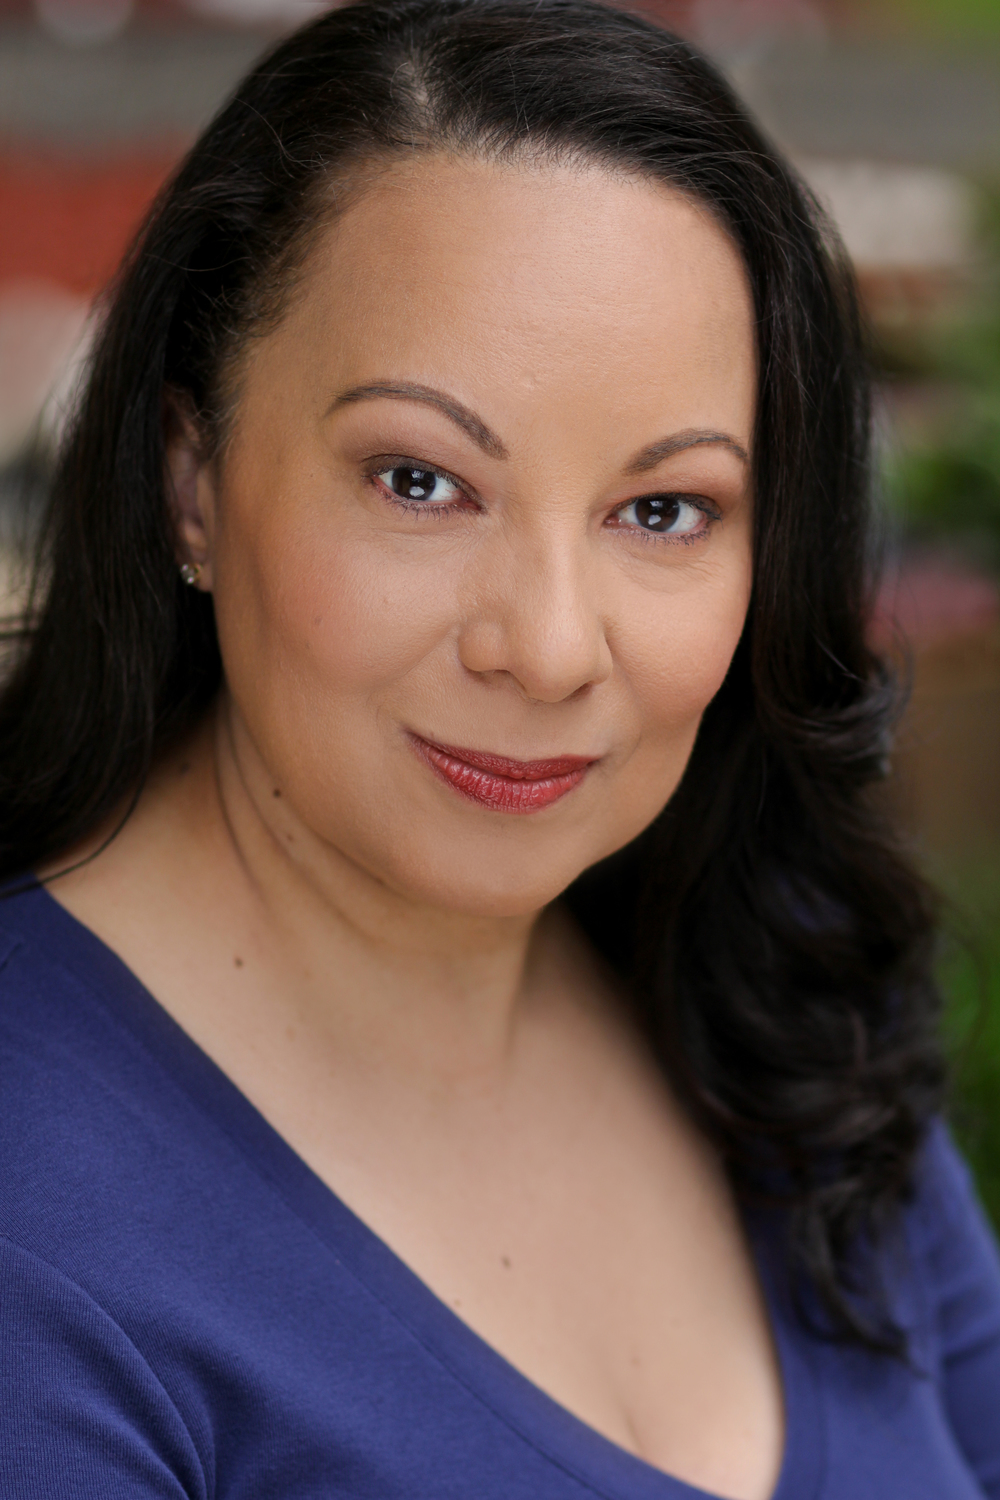 Carla McCullough as Ella